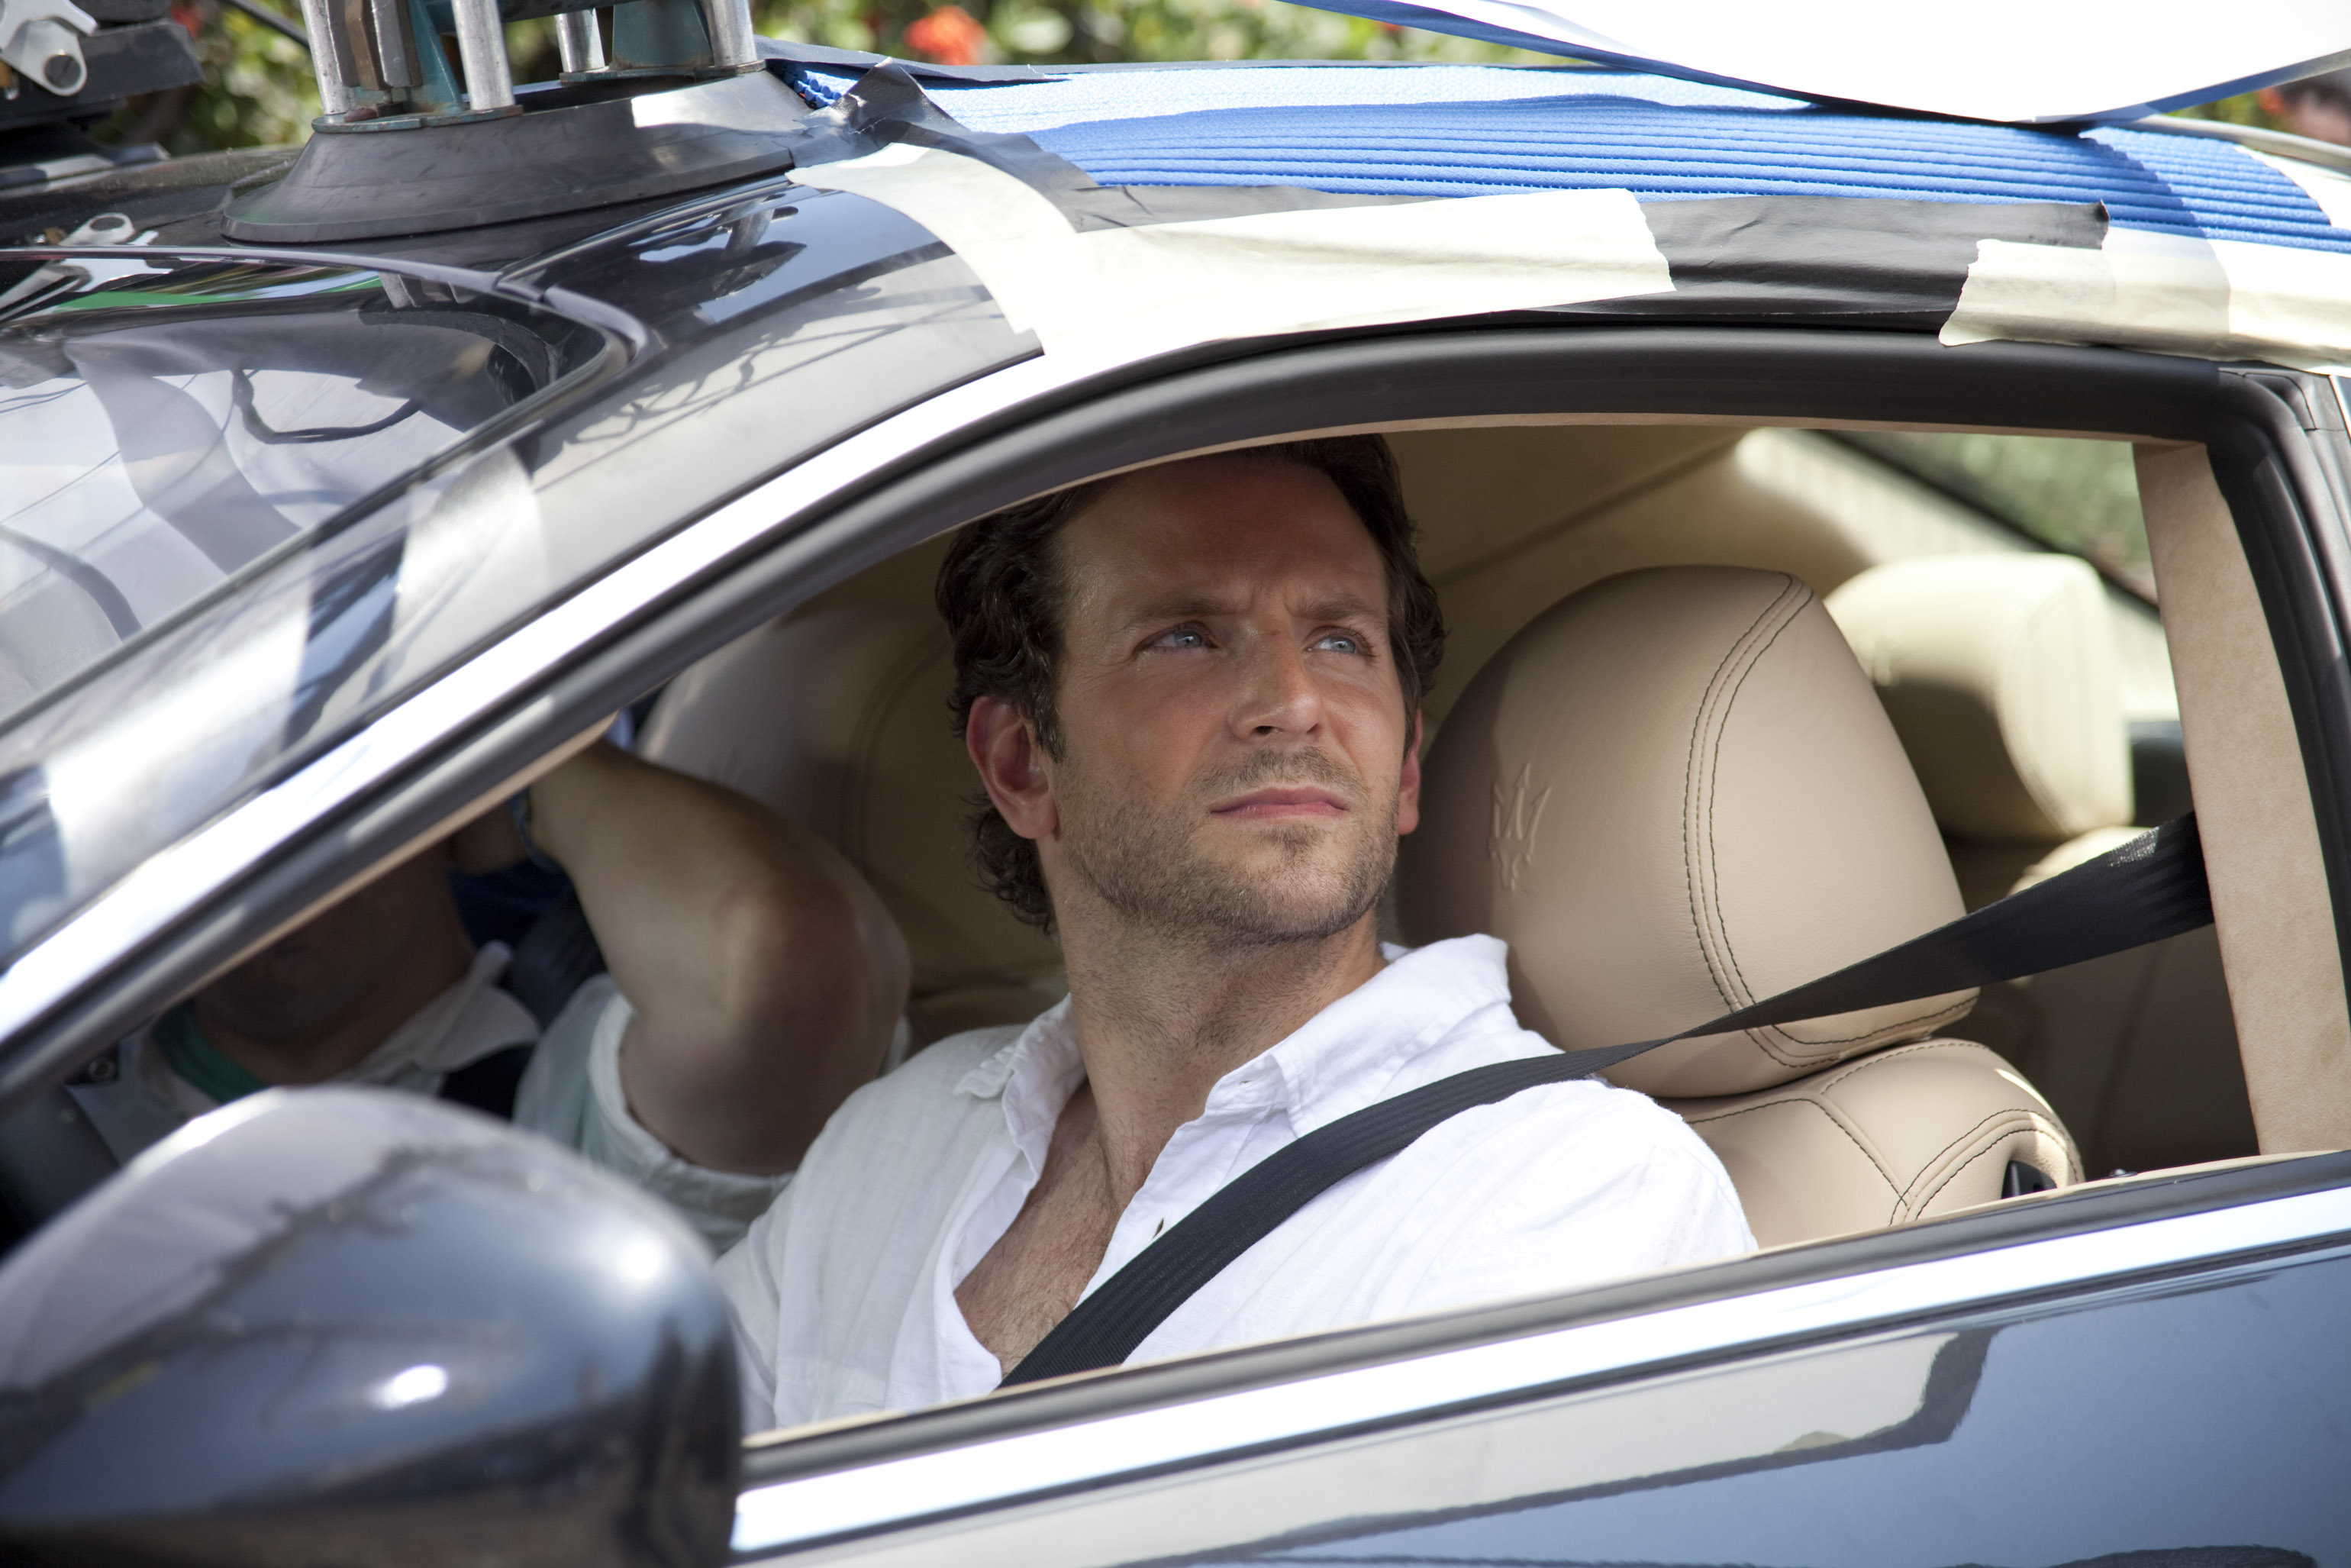 20 Photos of Celebrities and Their Maseratis | Complex